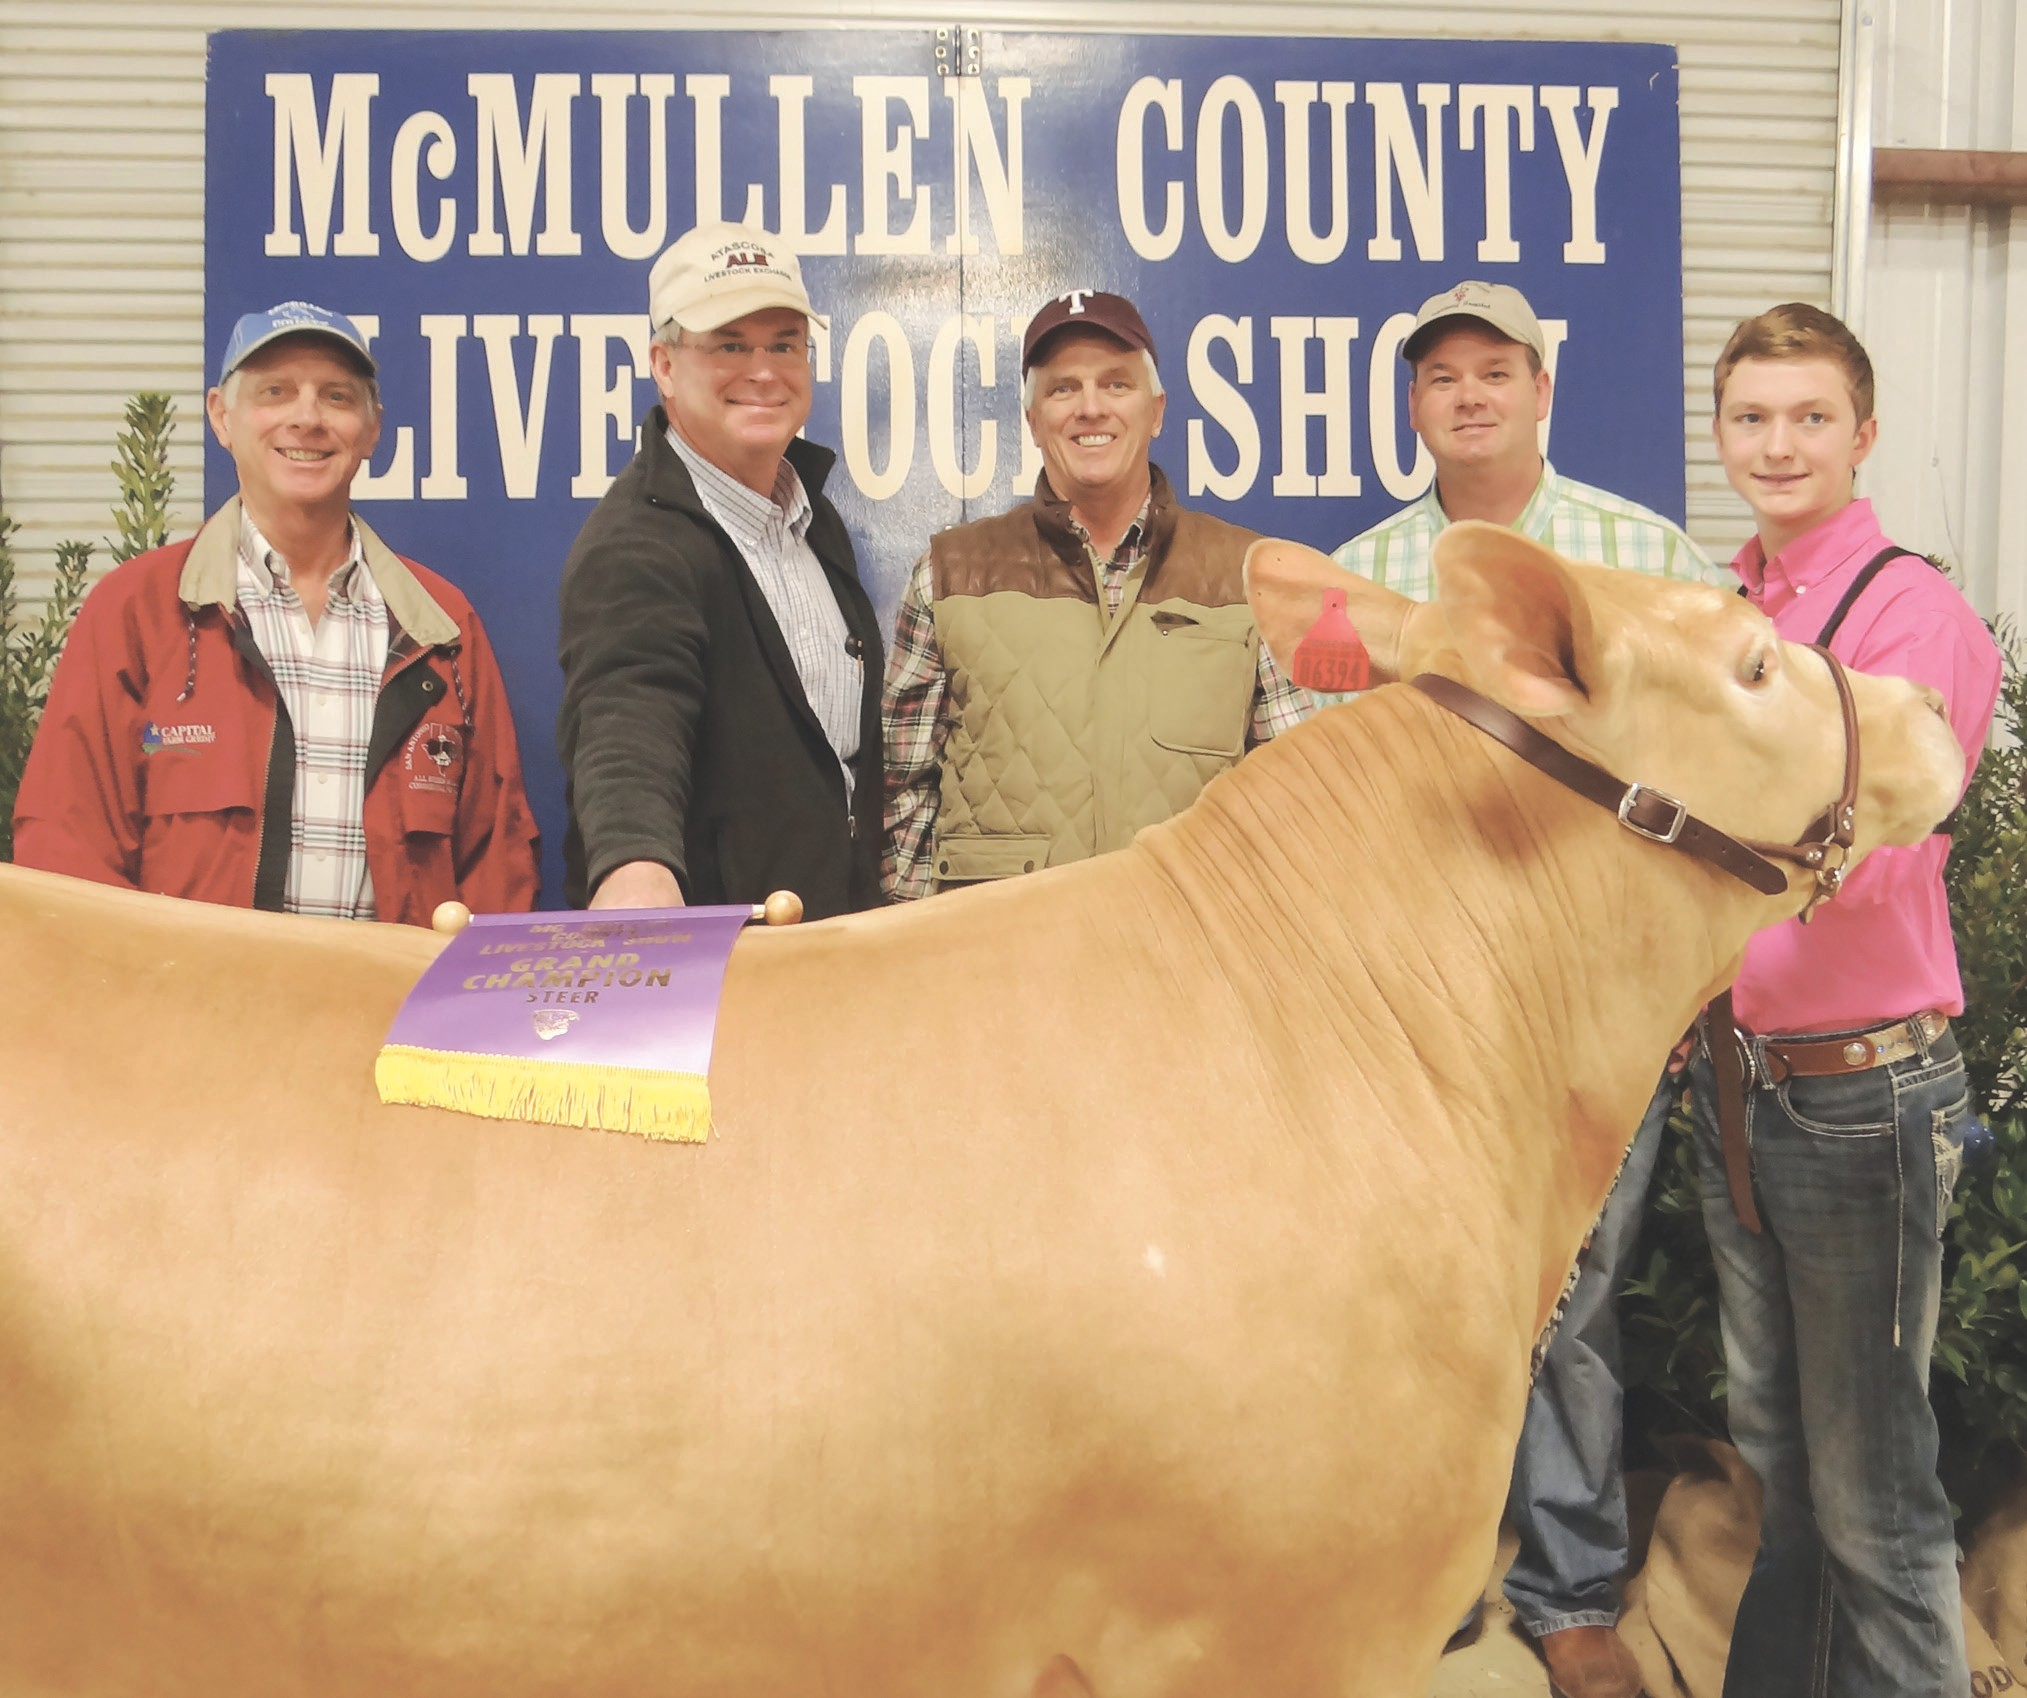 The McMullen County Livestock Show Grand Champion Steer was shown by Colton McCartney (right). The steer sold for $15,000 to (left to right) Marty Harris, San Miguel Syndicate; Jim Wheeler, Atascosa Livestock Exchange; Walt Franklin, Atascosa Syndicate and Dave Underwood, School House Syndicate.